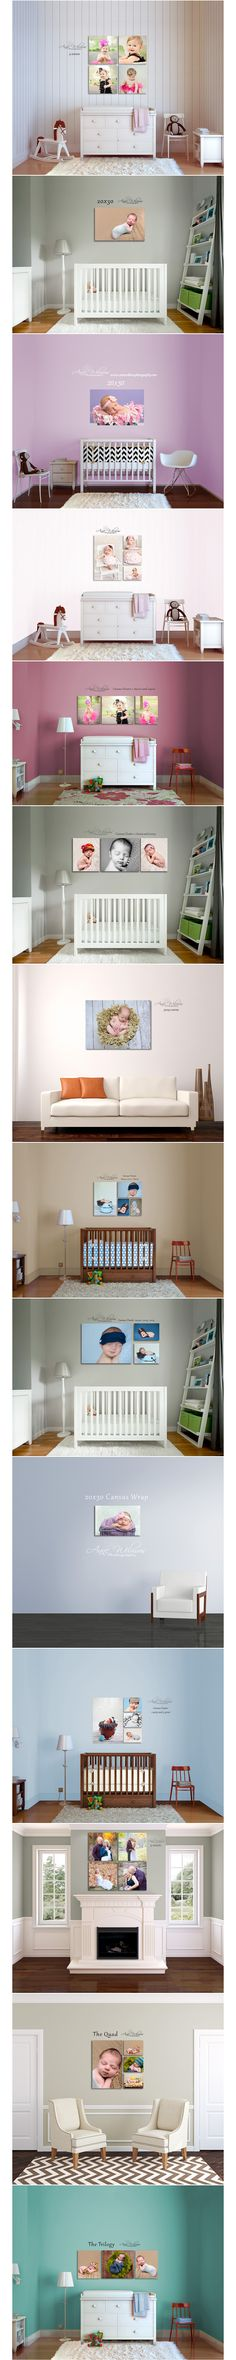 Baby photo display ideas, Canvas hanging options, ways to group photos on a wall, Anne Wilmusphotography, Pittsburgh Newborn and maternity photographer